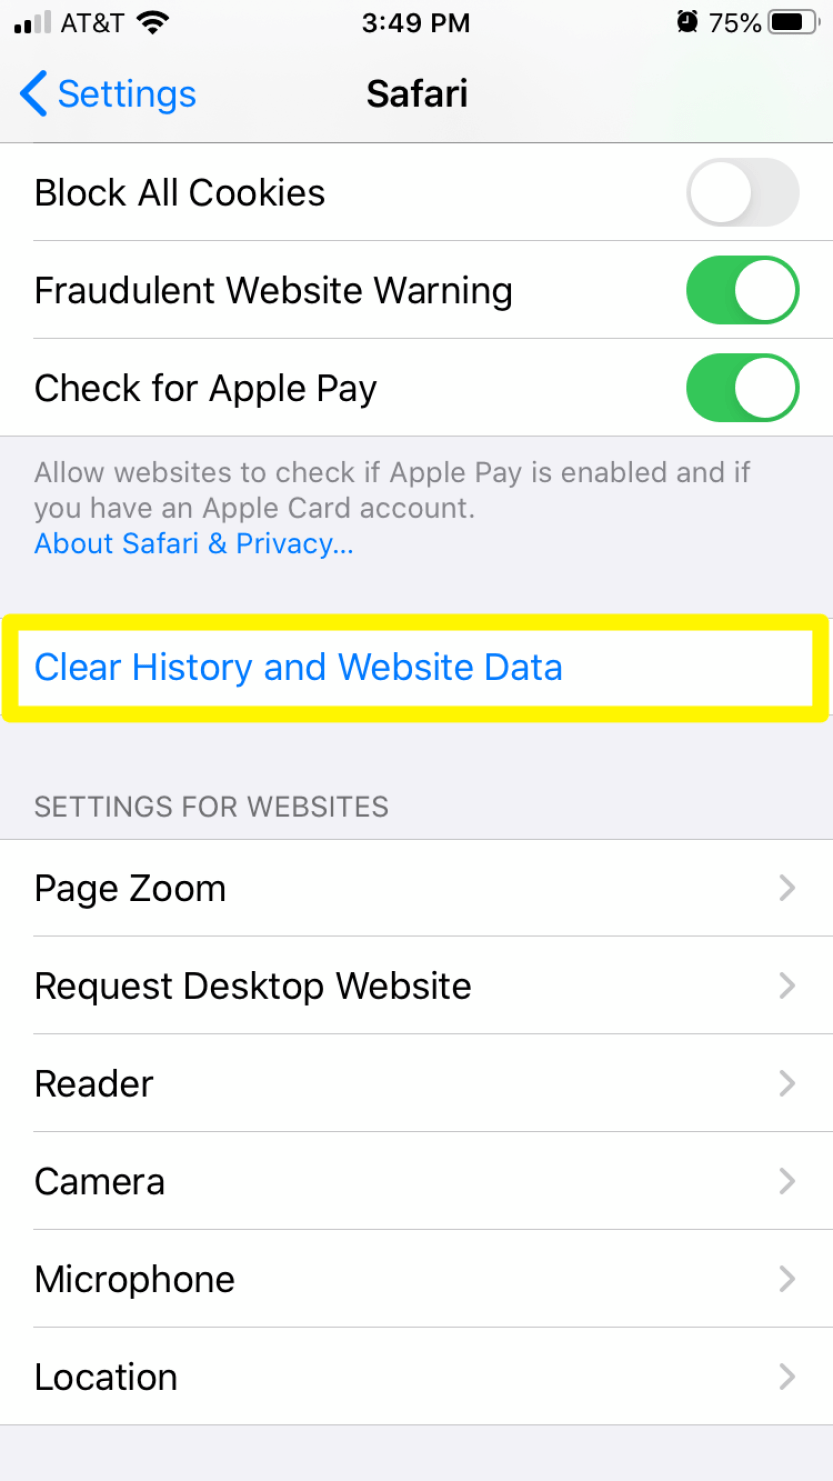 The Clear History and Browsing Data option in Safari's mobile settings.